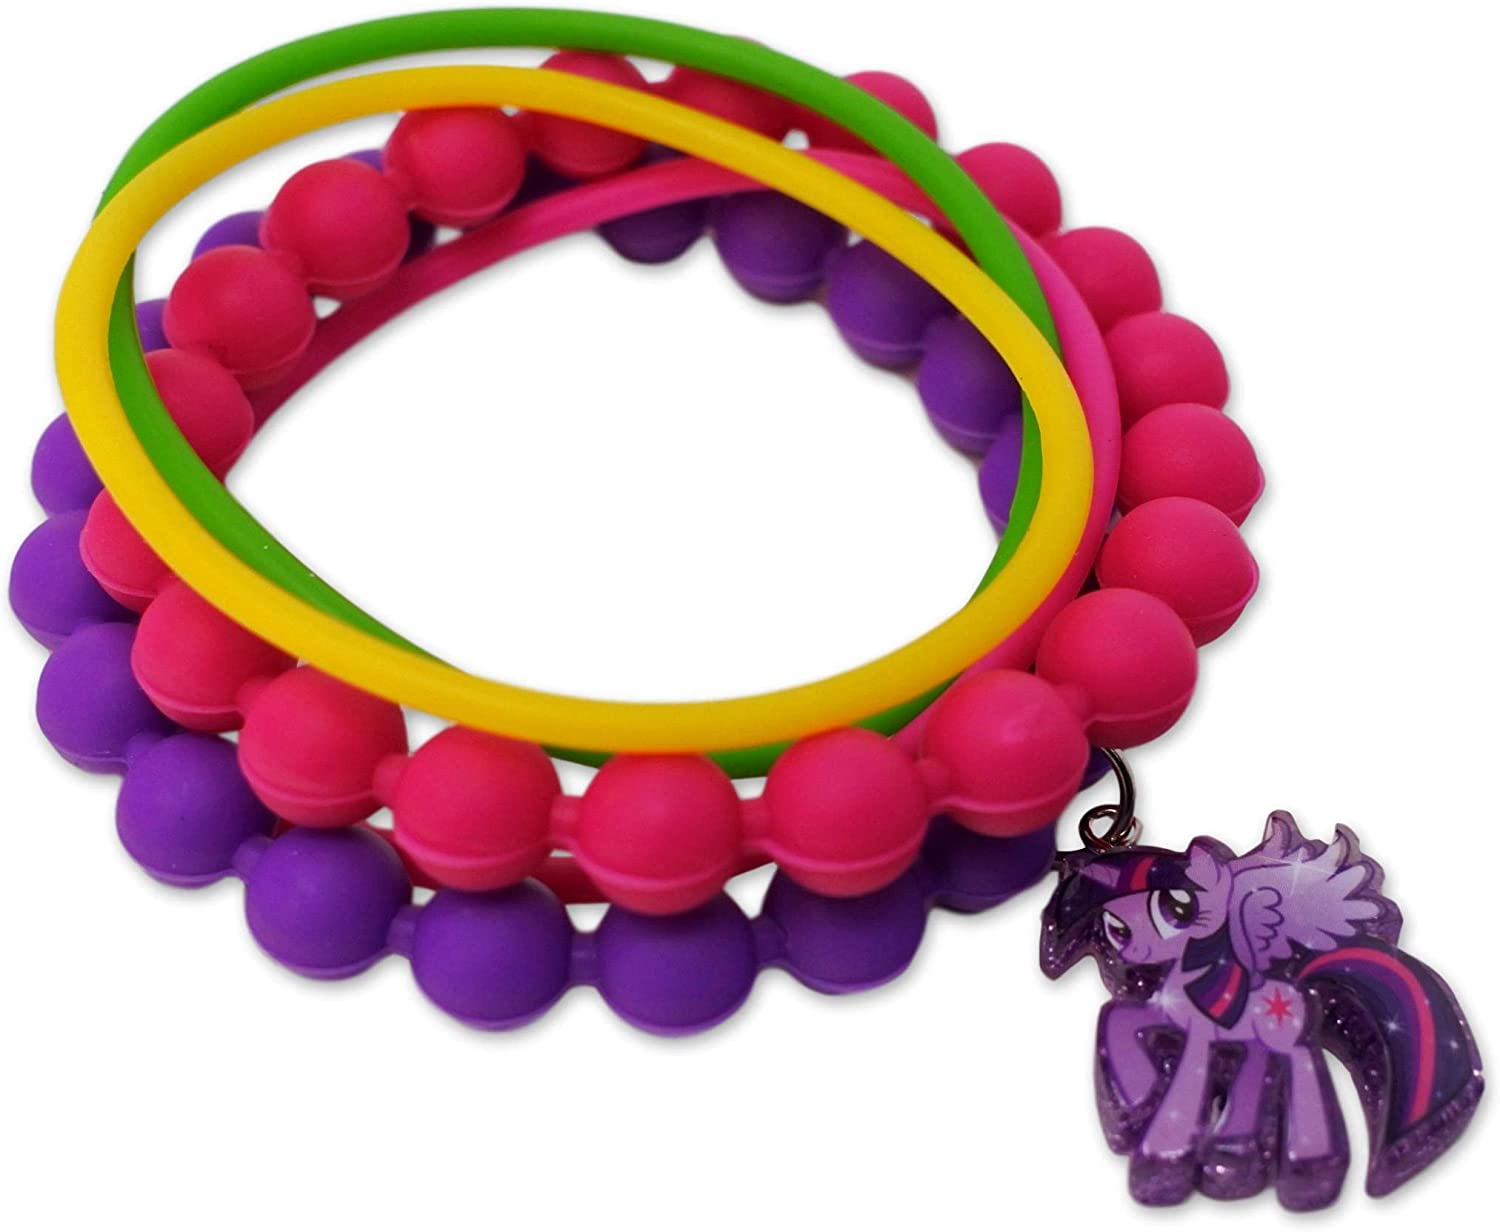 My Little Pony Bracelets Limited price sale for Twilight Girls with Sparkle Charm Ranking TOP9